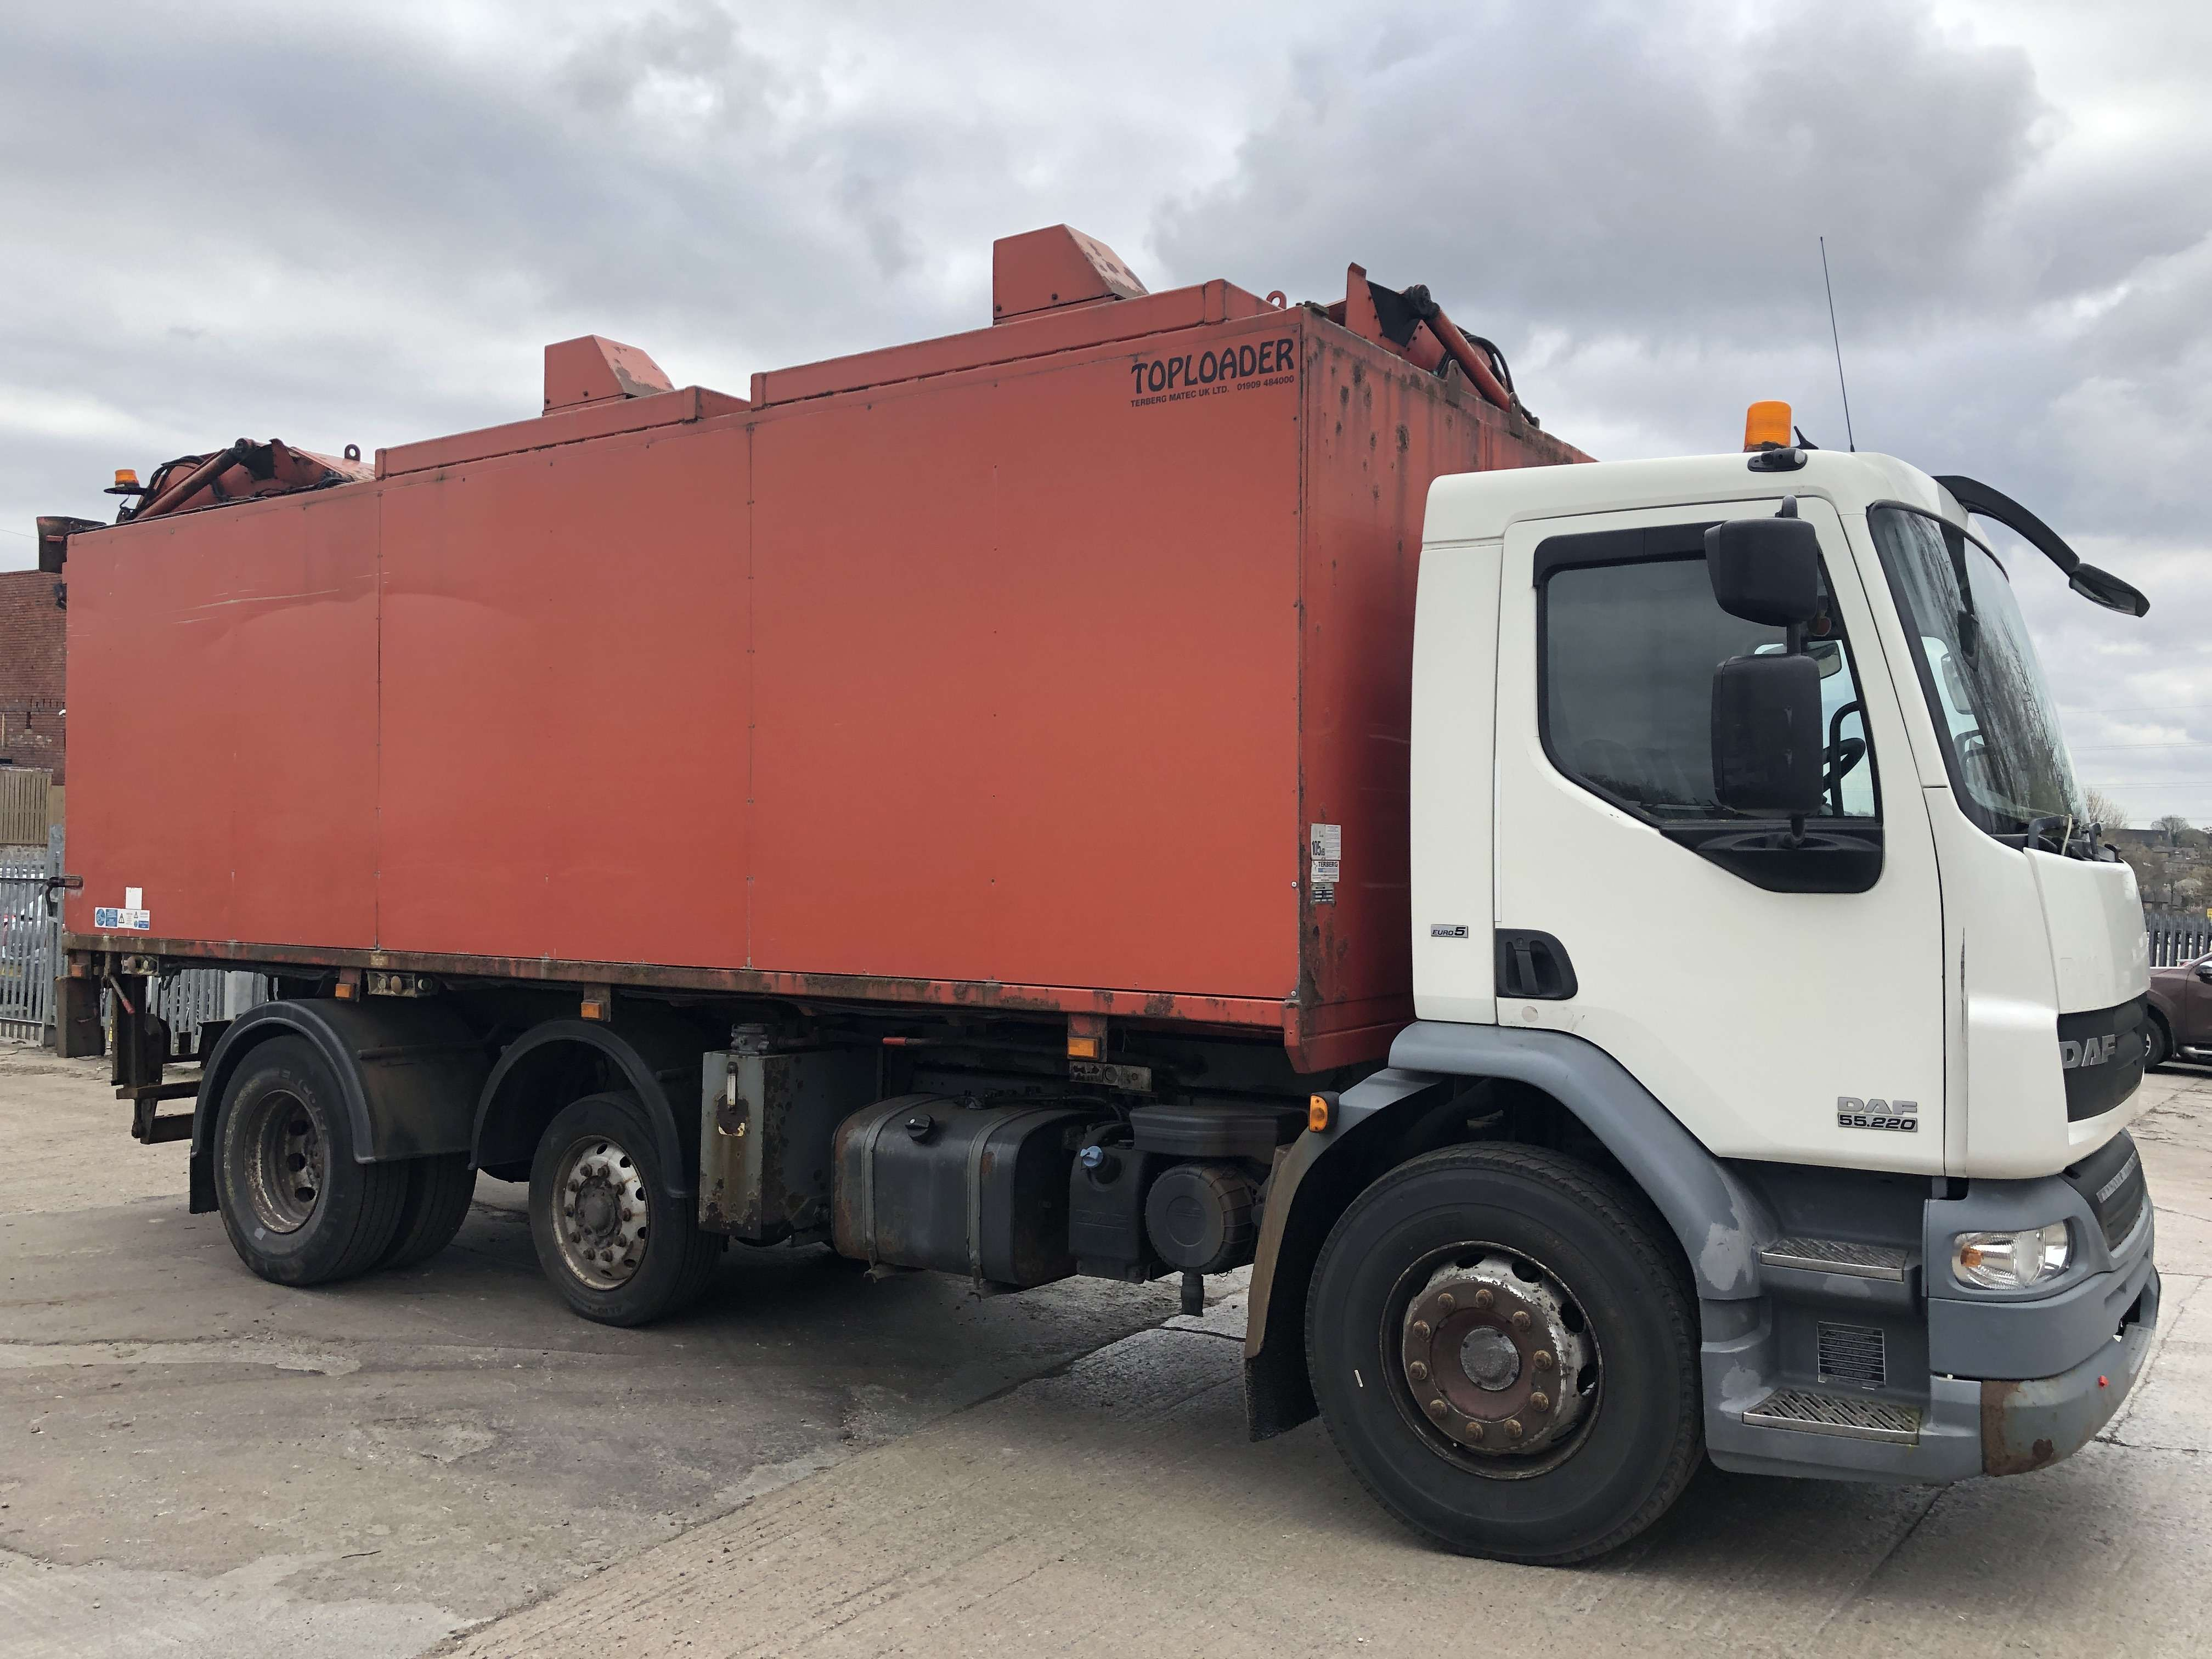 2008 DAF LF45.220 toploader refuse truck for sale 6